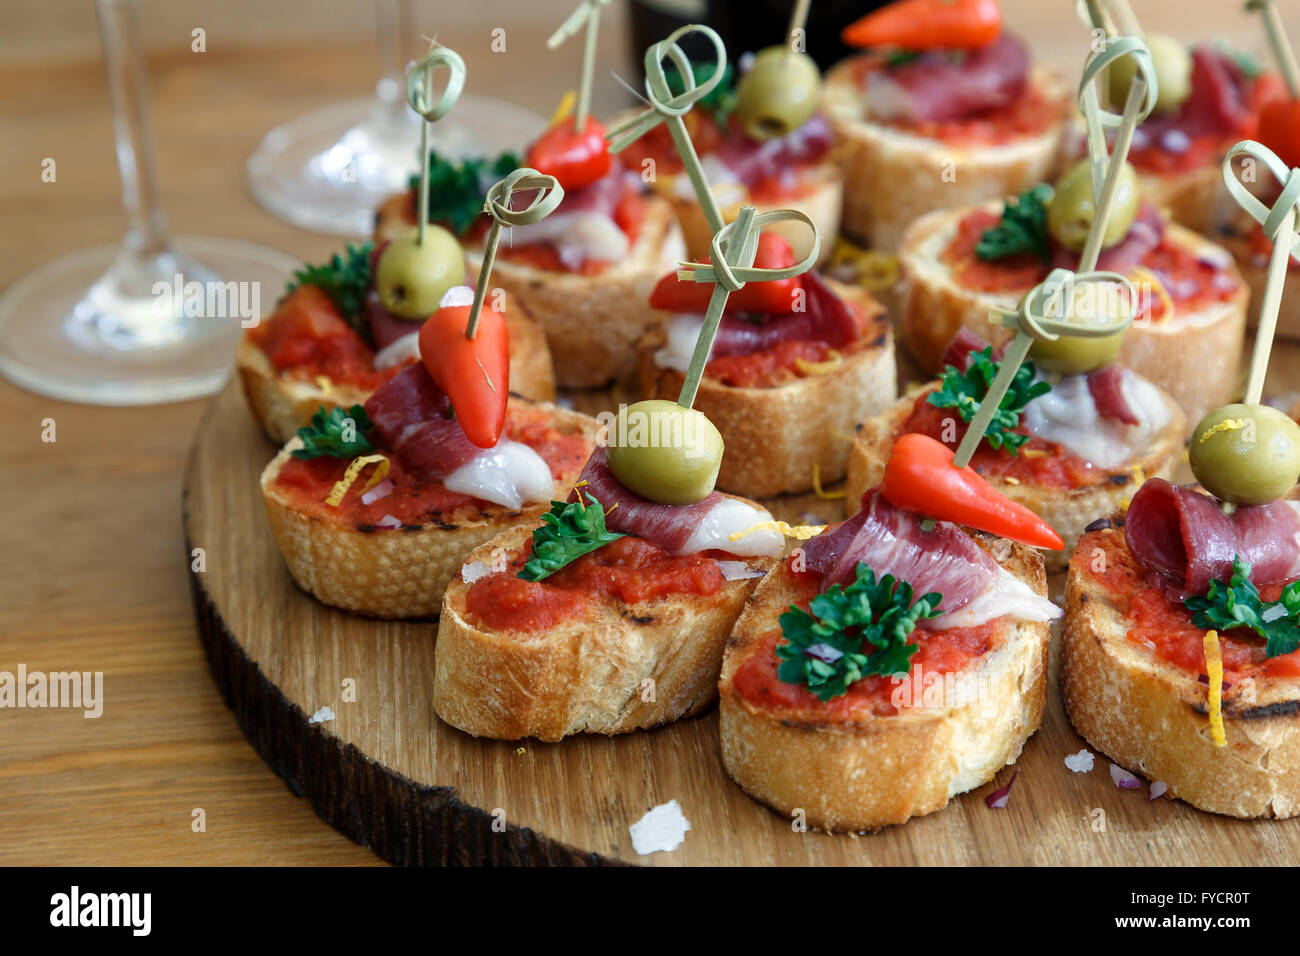 Pinchos tapas spanish canapes party finger food stock - Photo canape ...